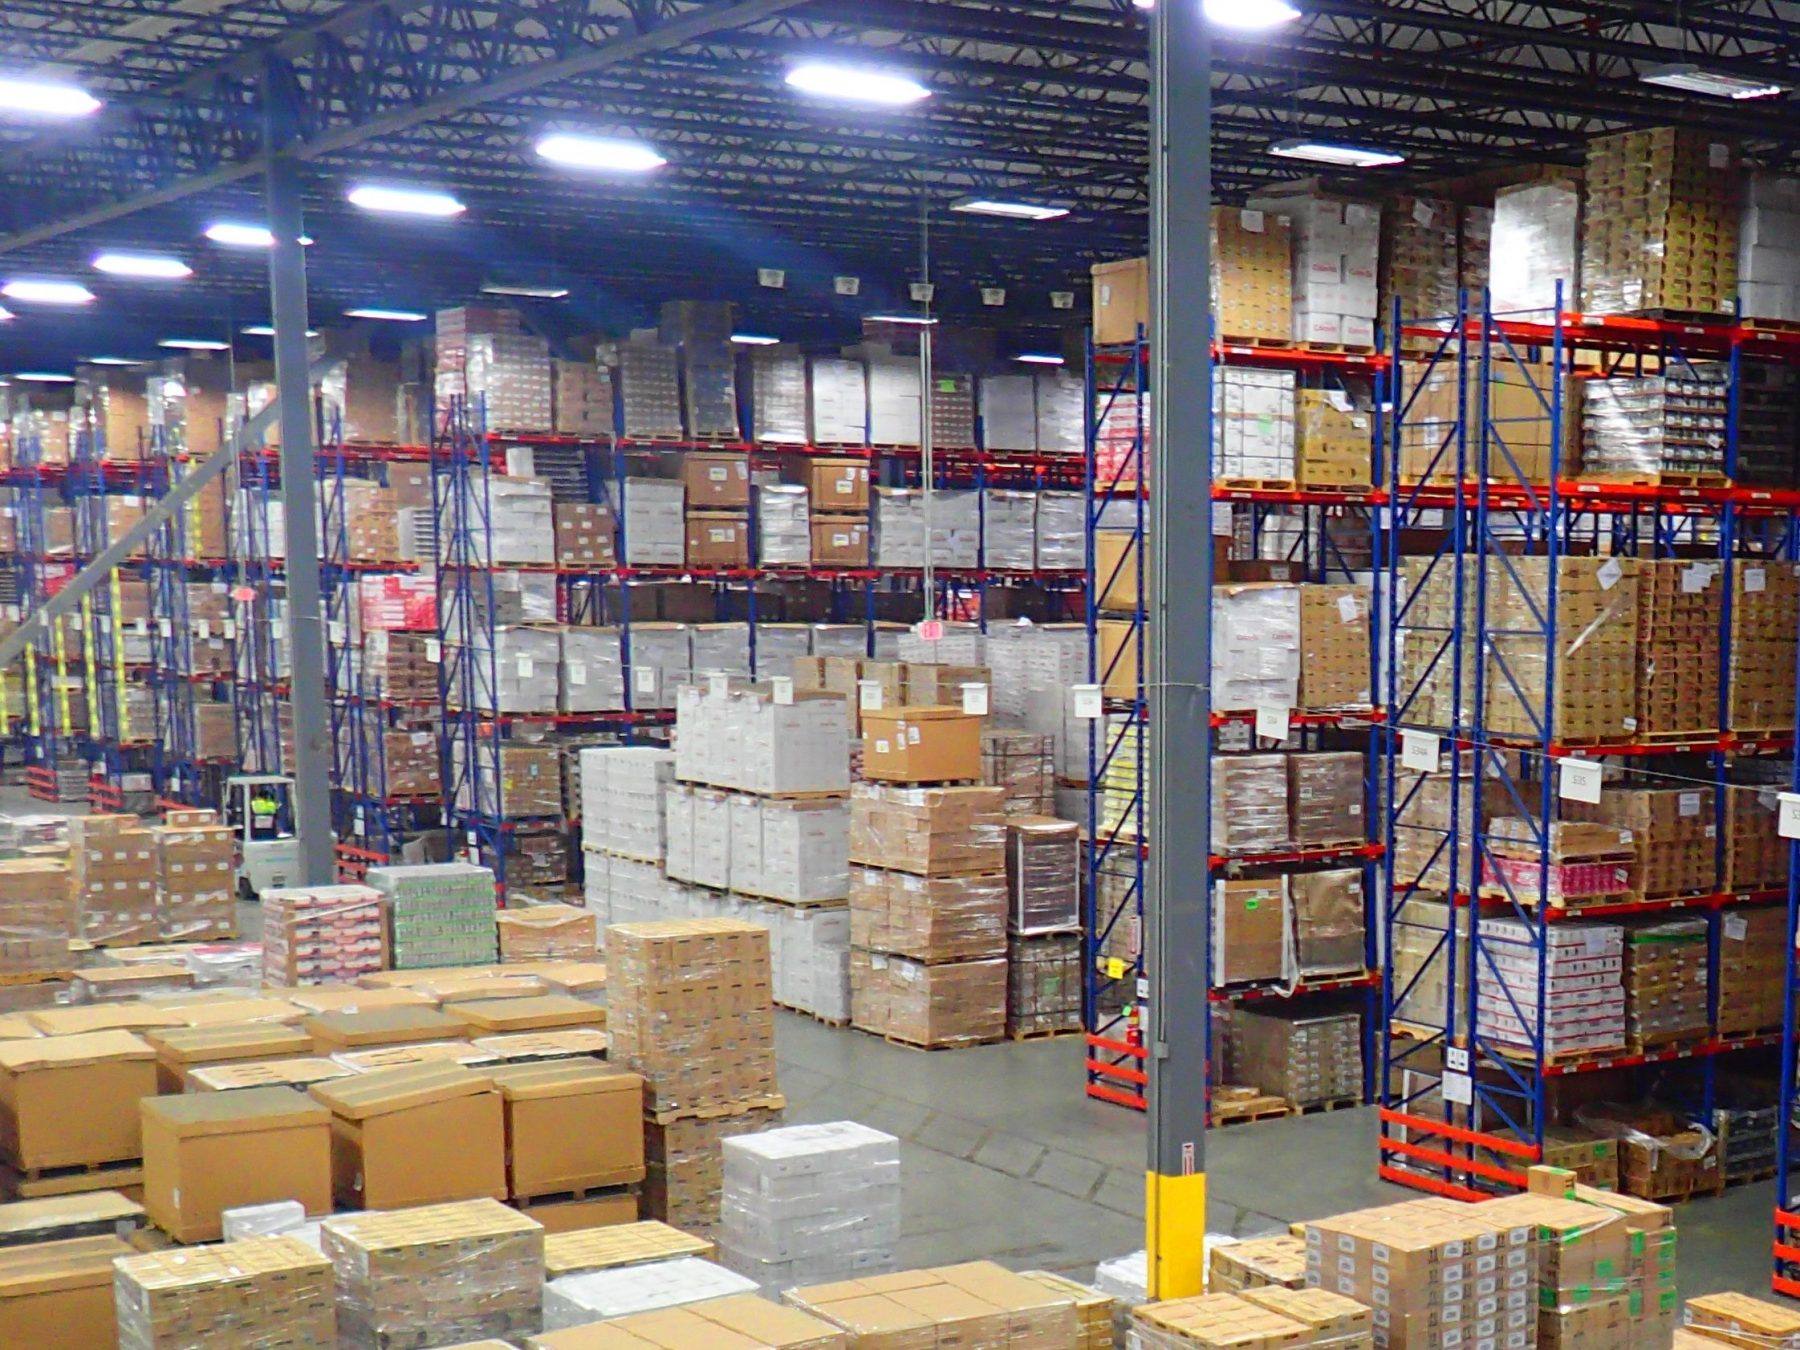 From AIB to Z: The ABCs of Operating a Food Warehouse